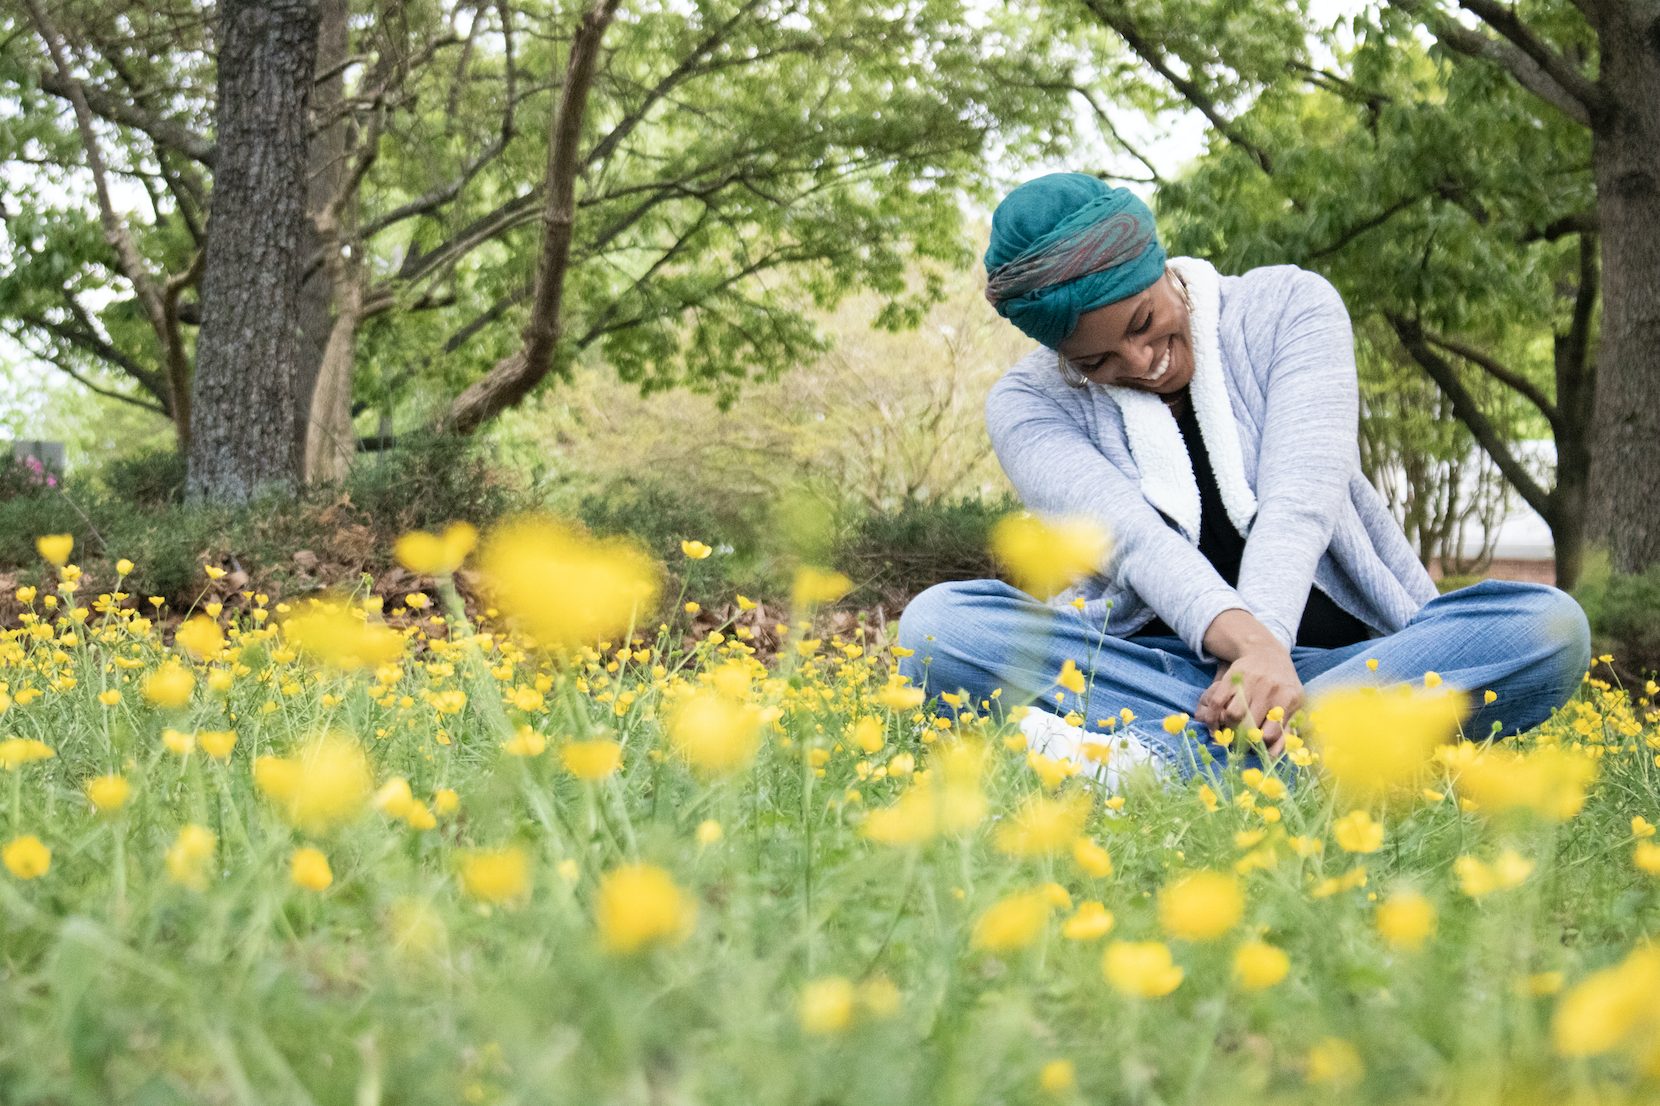 black-girl-with-headwrap-sitting-in-a-bed-of-yellow-flowers-puckn-khaos